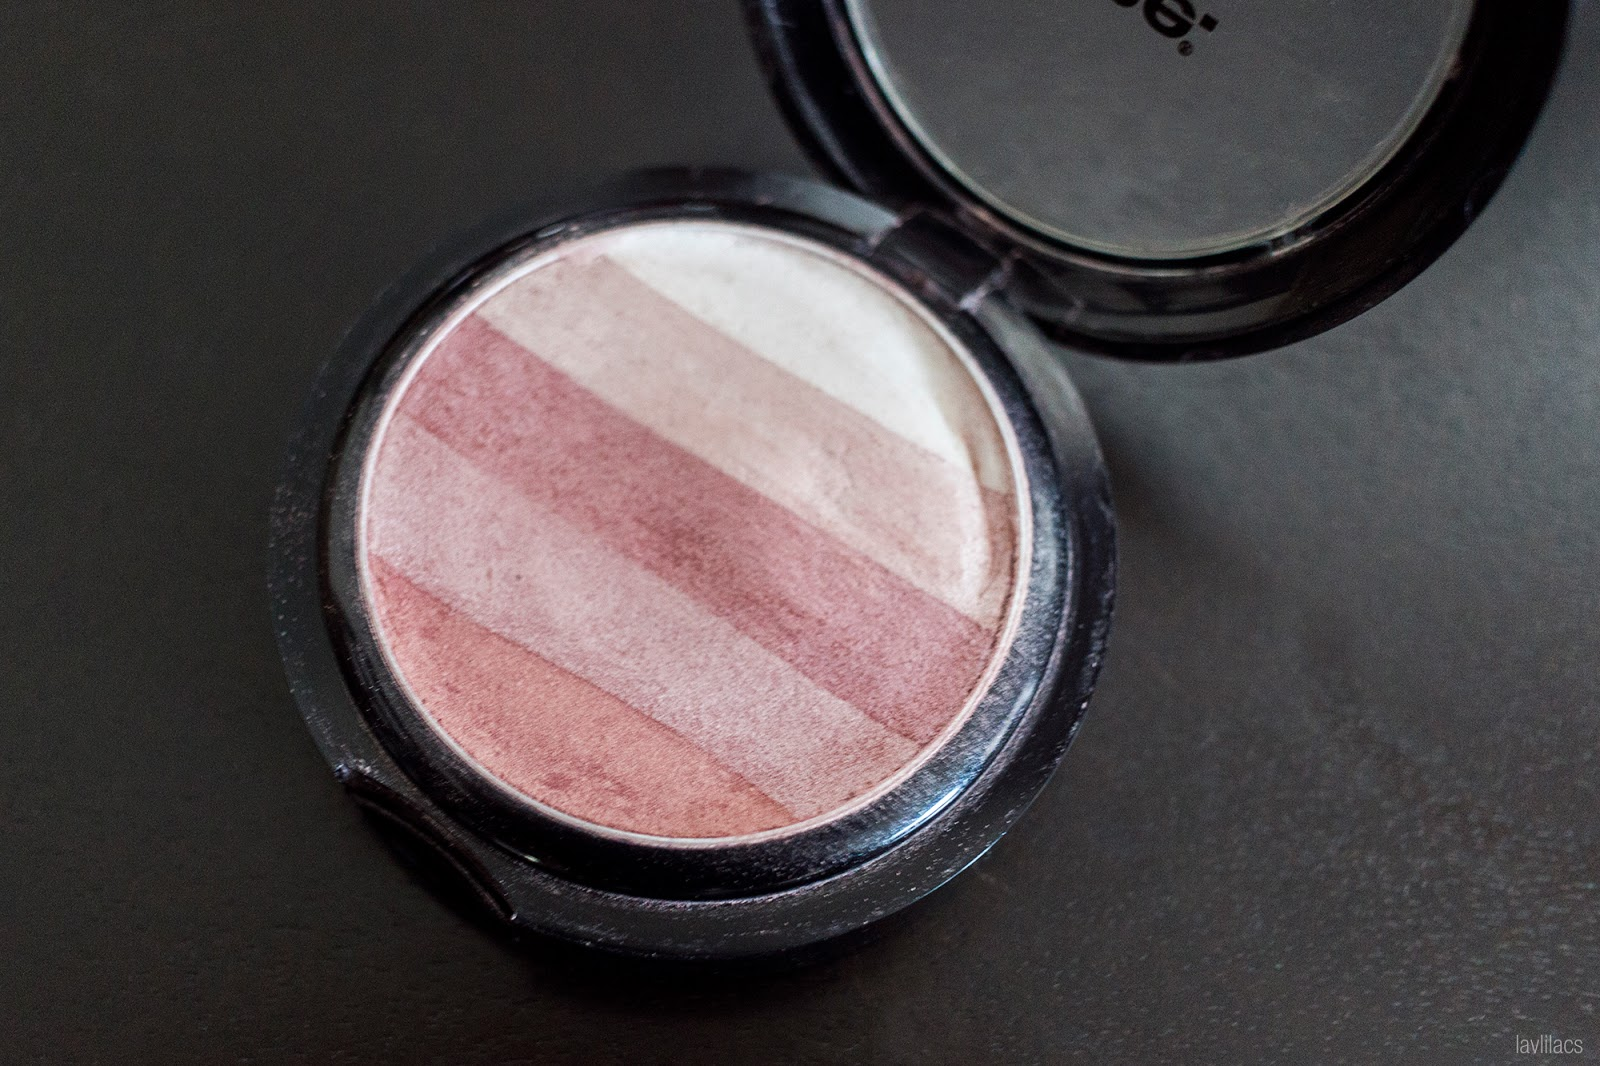 Project Make A Dent 2016 jane Shimmering Blush 01 Natural Blush - Before results